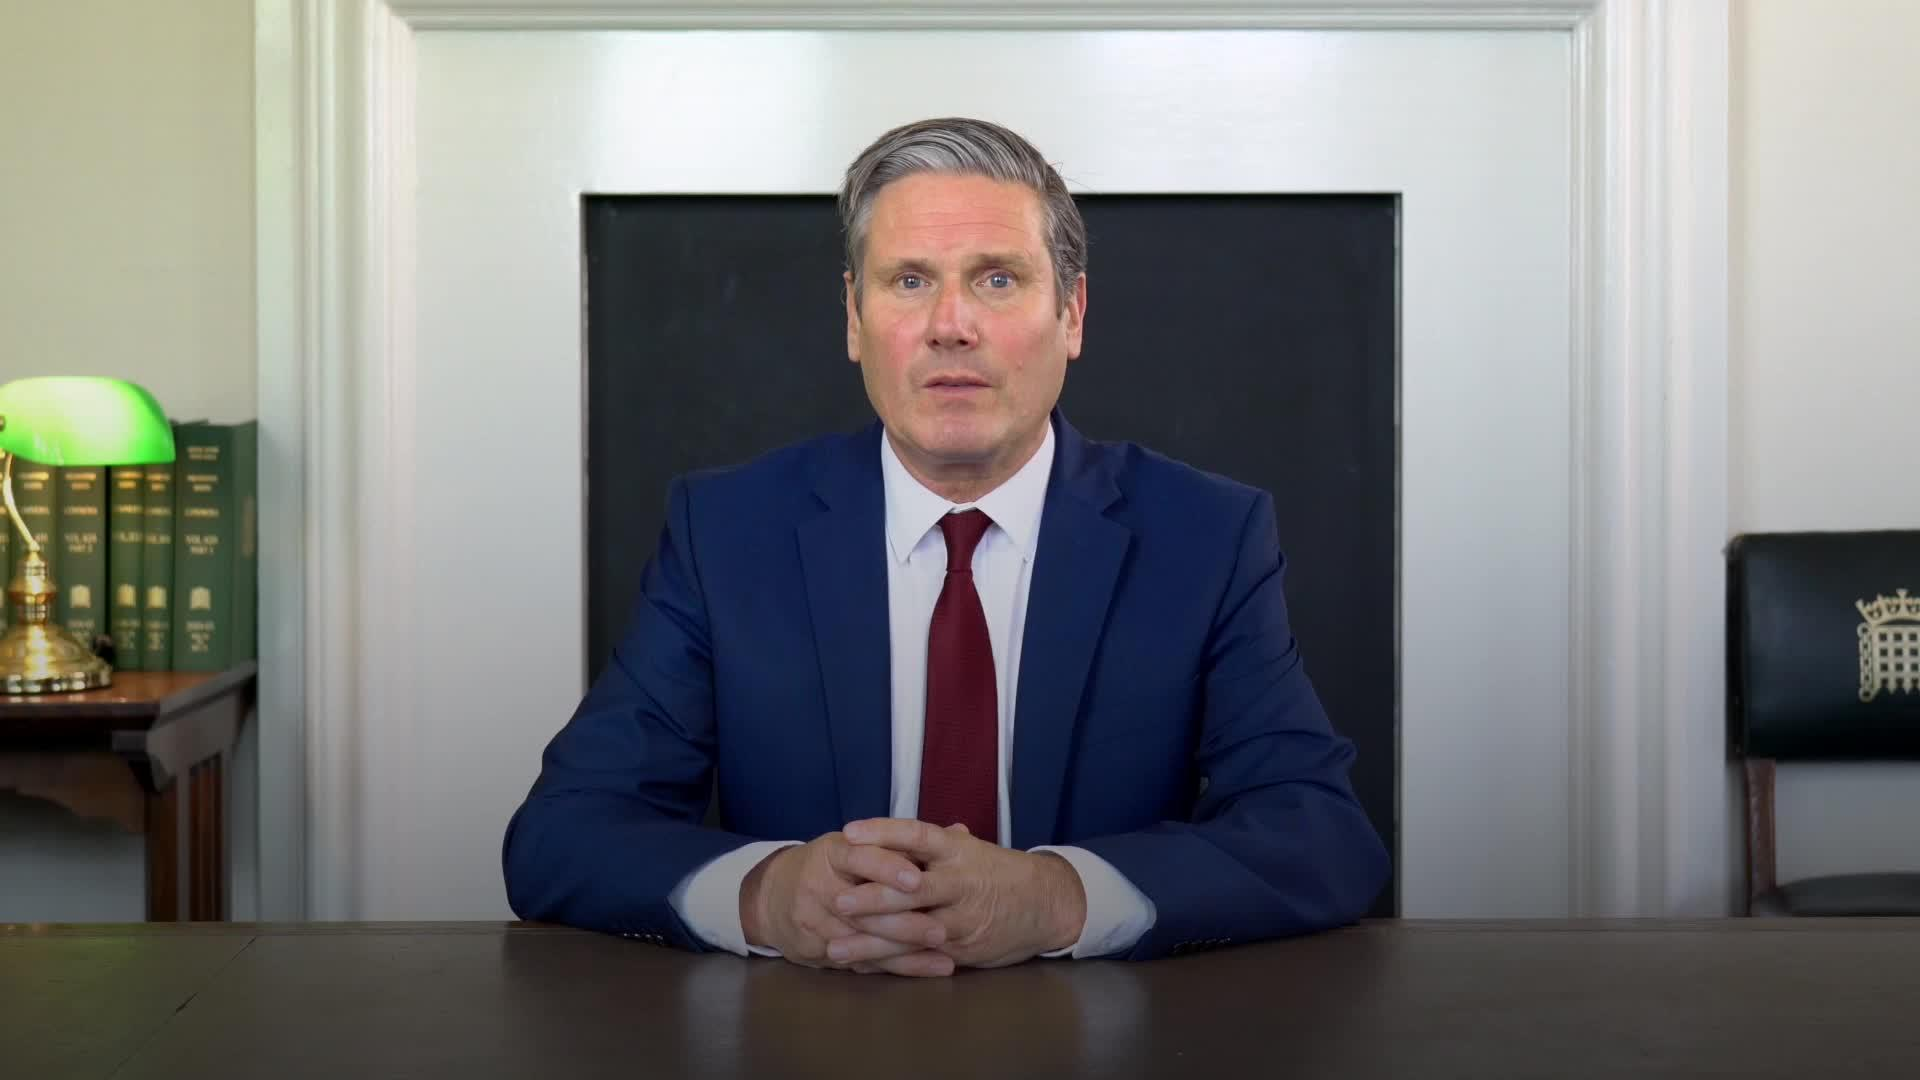 Starmer calls on Johnson to provide 'clarity and reassurance' in Covid-19 crisis